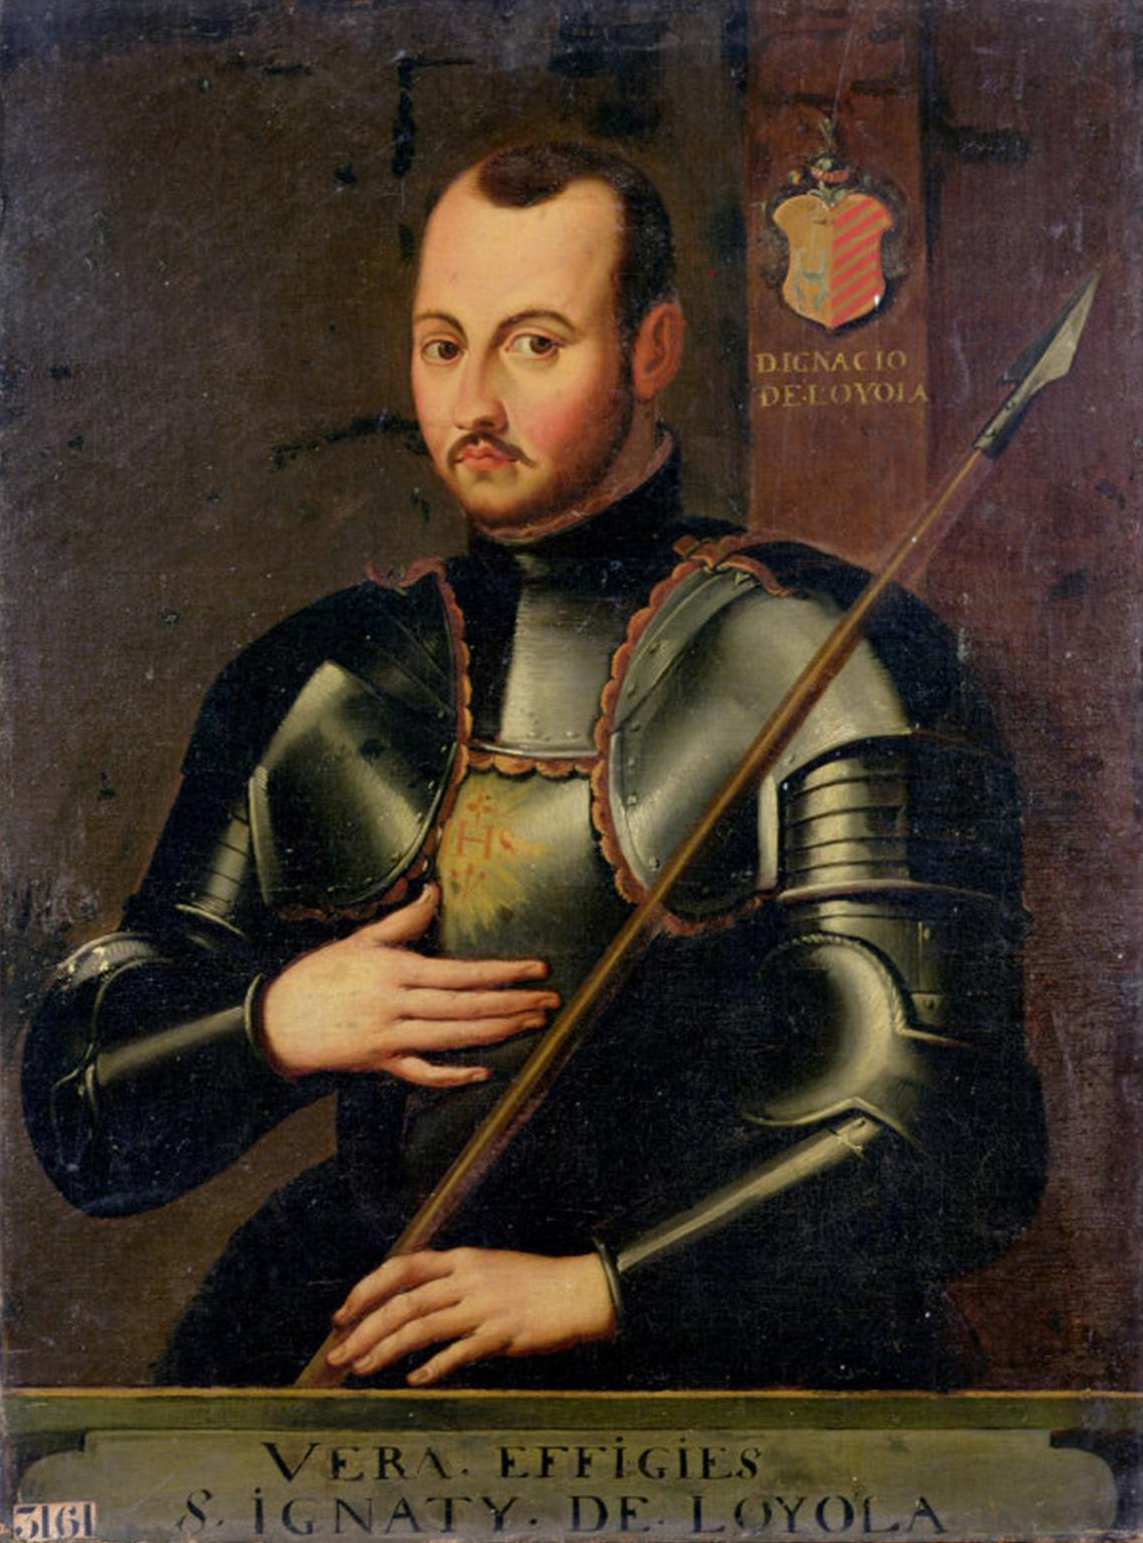 St. Ignatius of Loyola, dressed as a knight